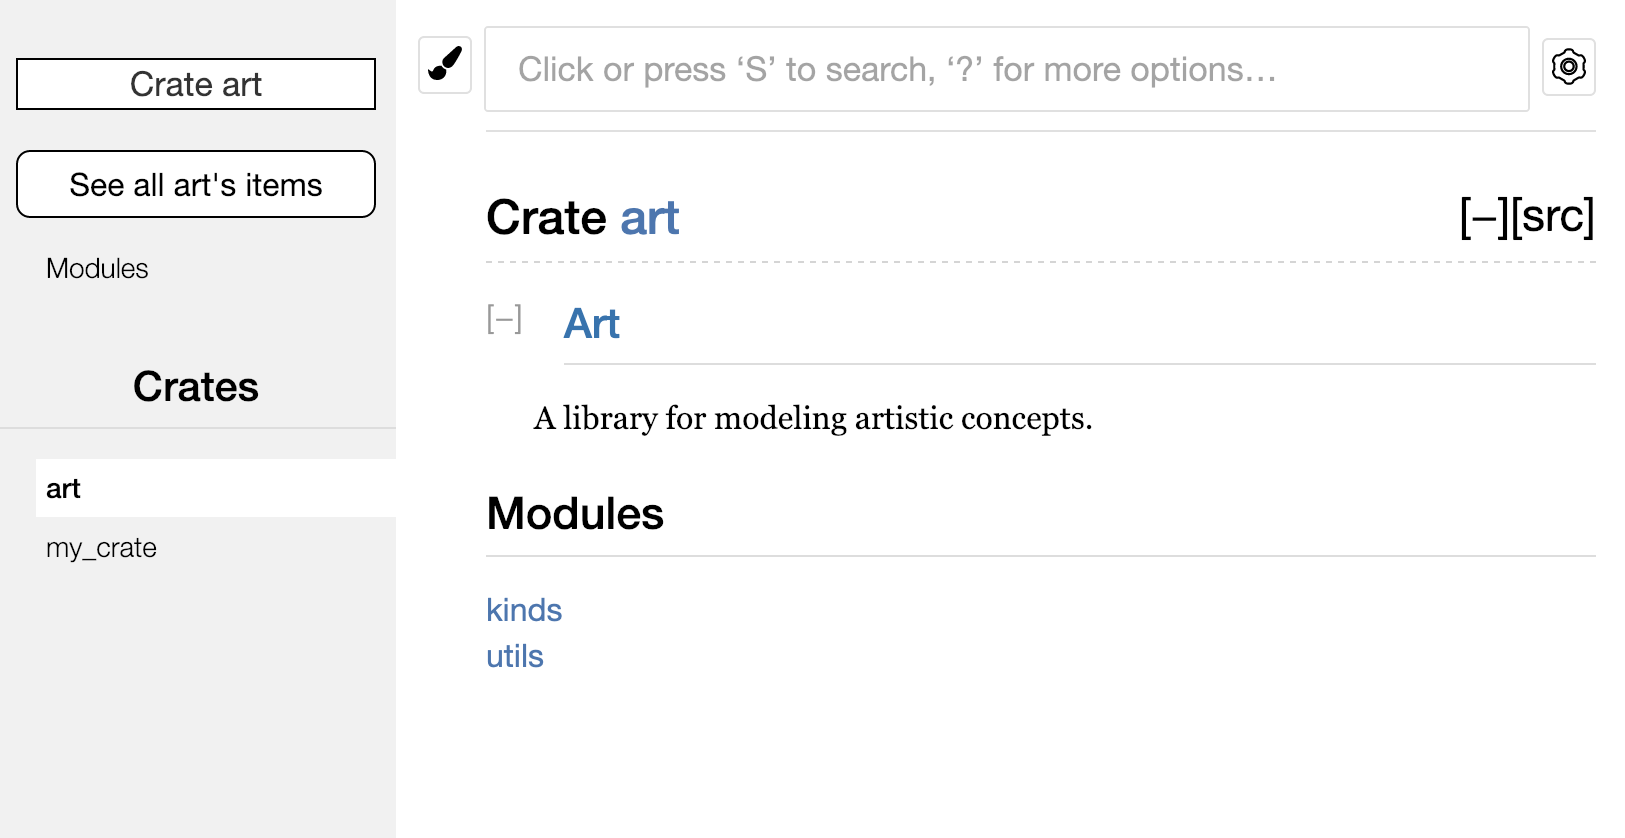 Rendered documentation for the `art` crate that lists the `kinds` and `utils` modules